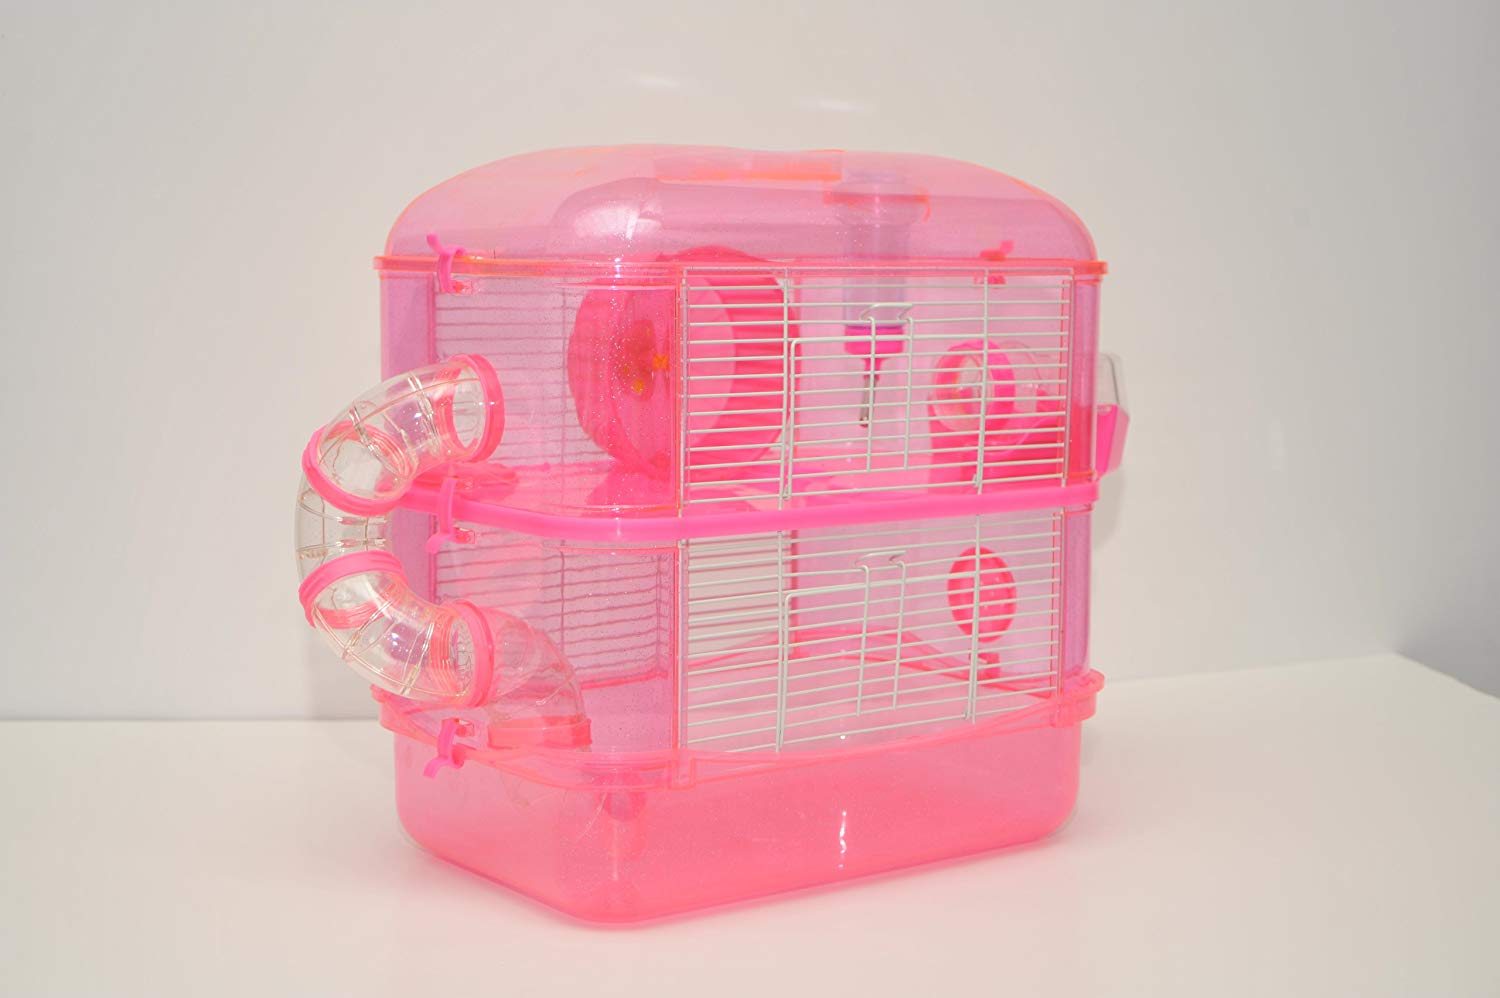 Fantazia 2 Large Pink Glitter Hamster Small Animal Cage With Free Hamster Ball